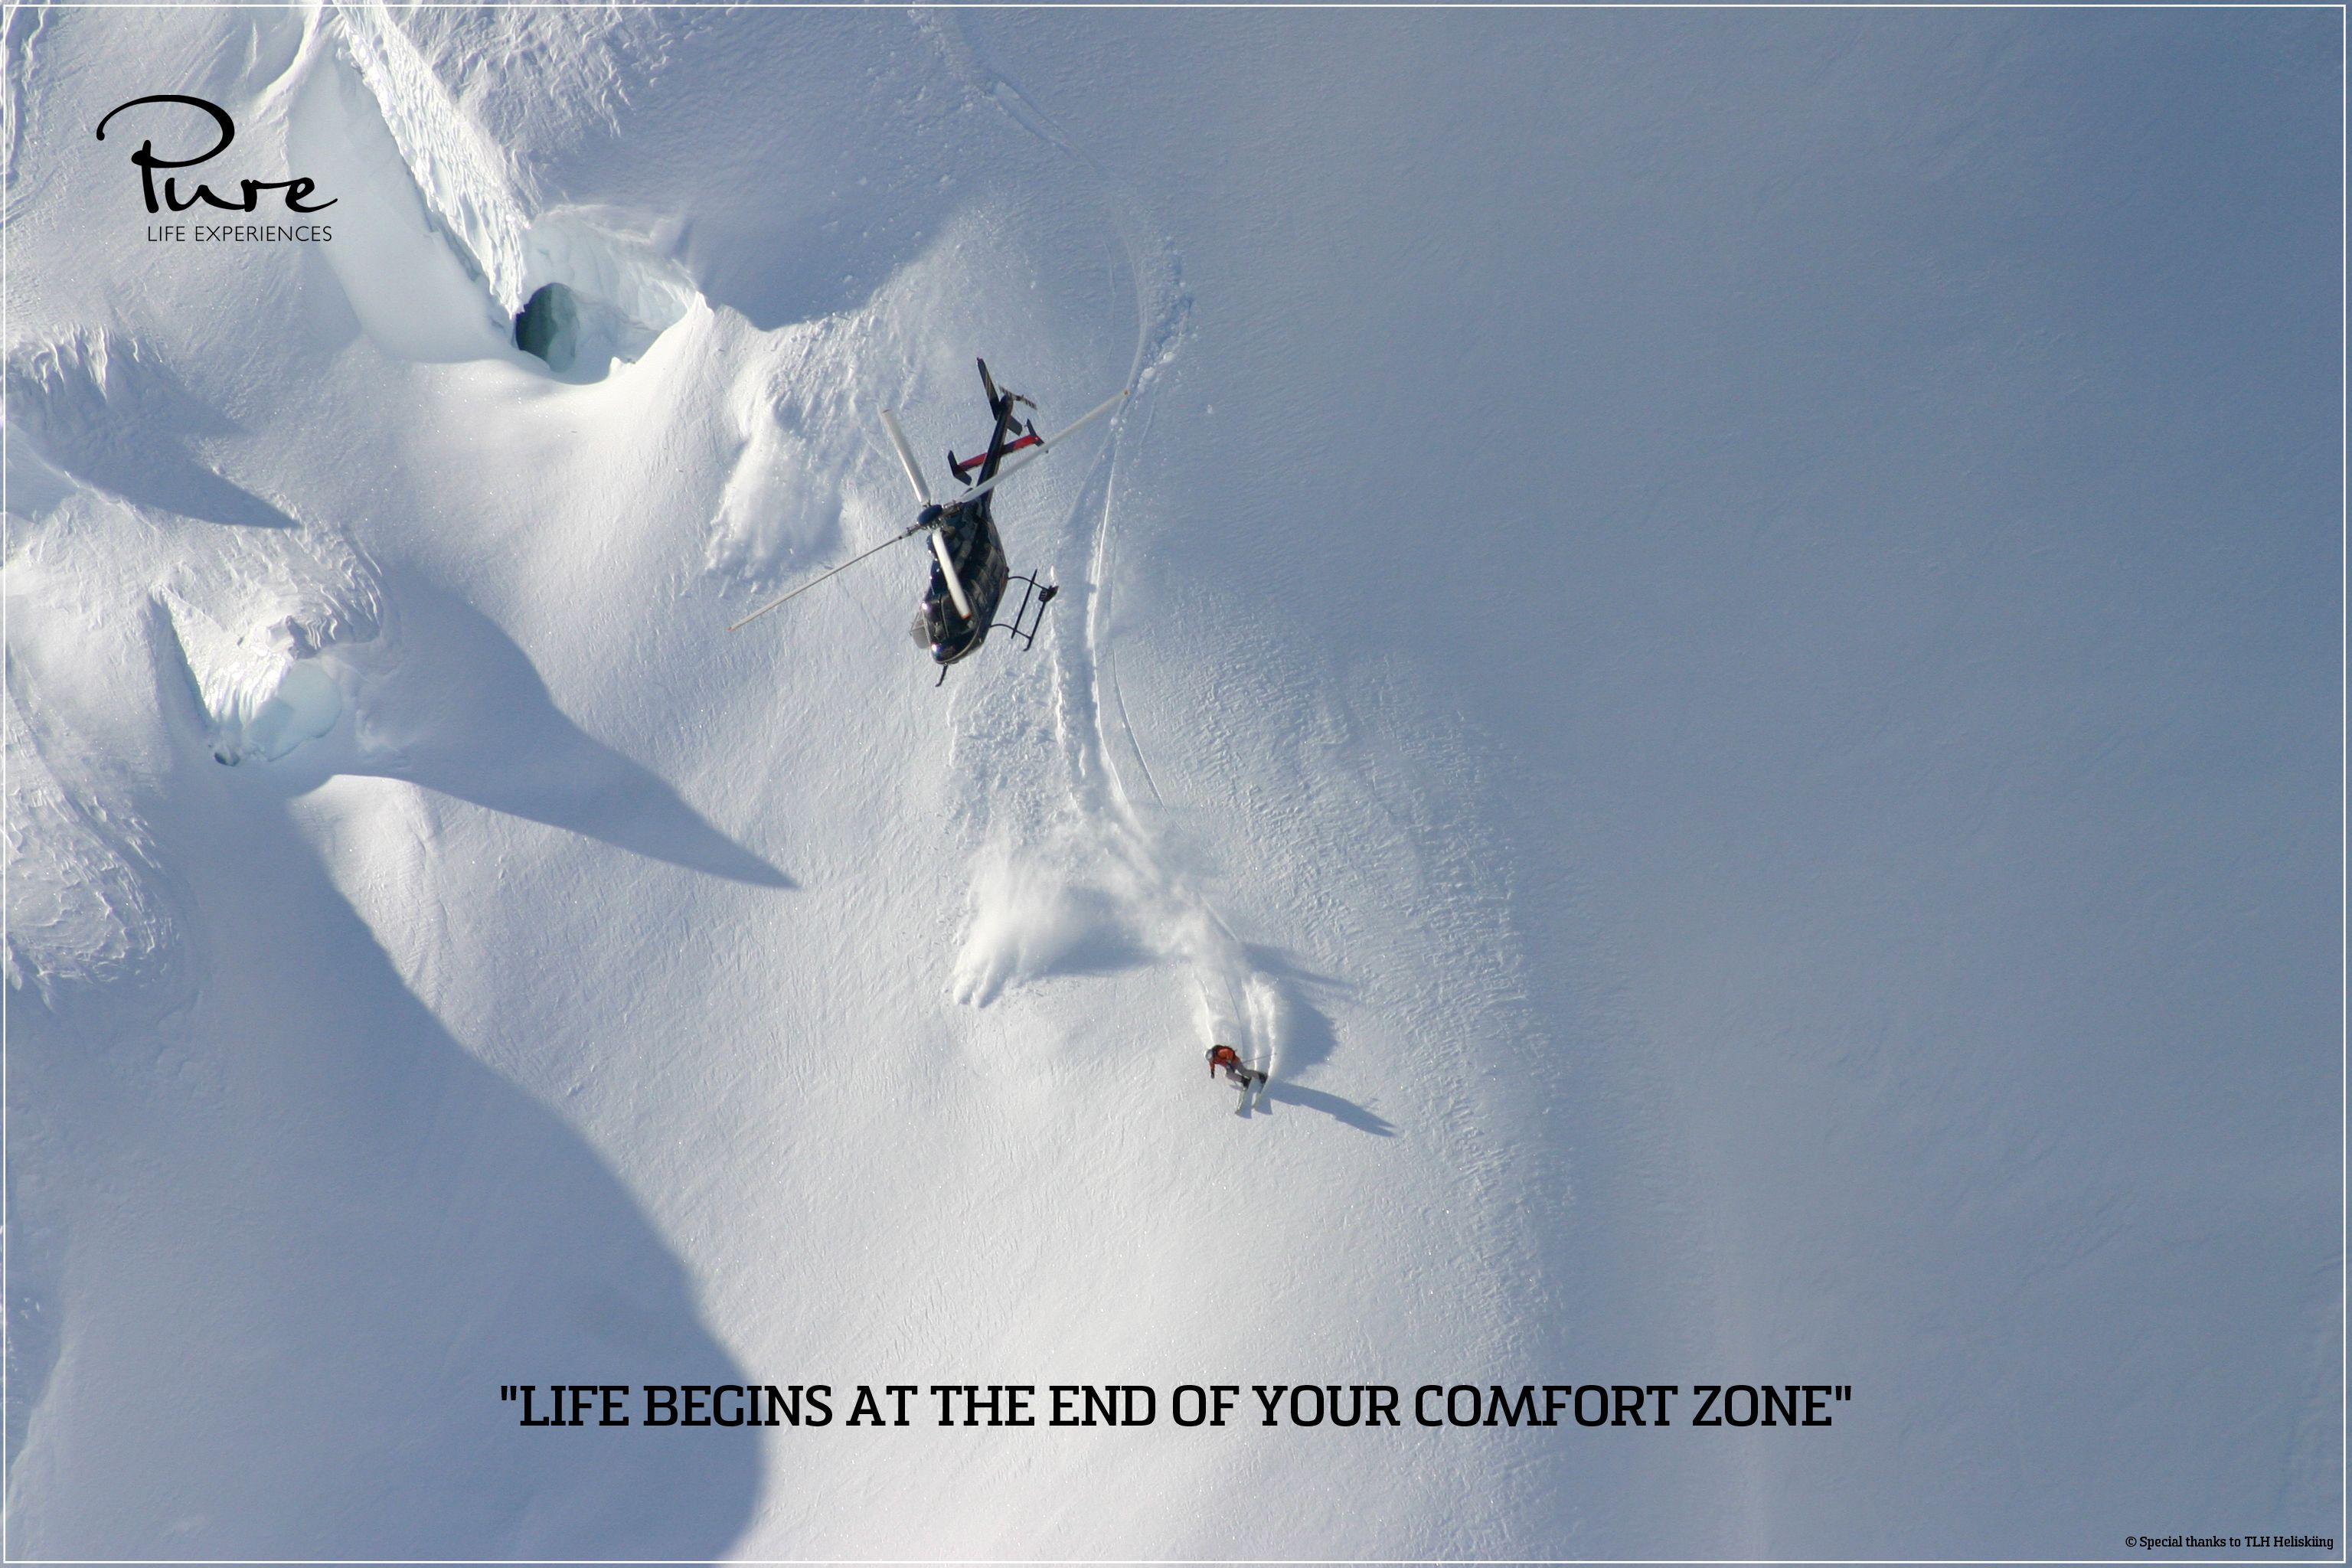 Life begins at the end of your comfort zone - photo from TLH Heliskiing